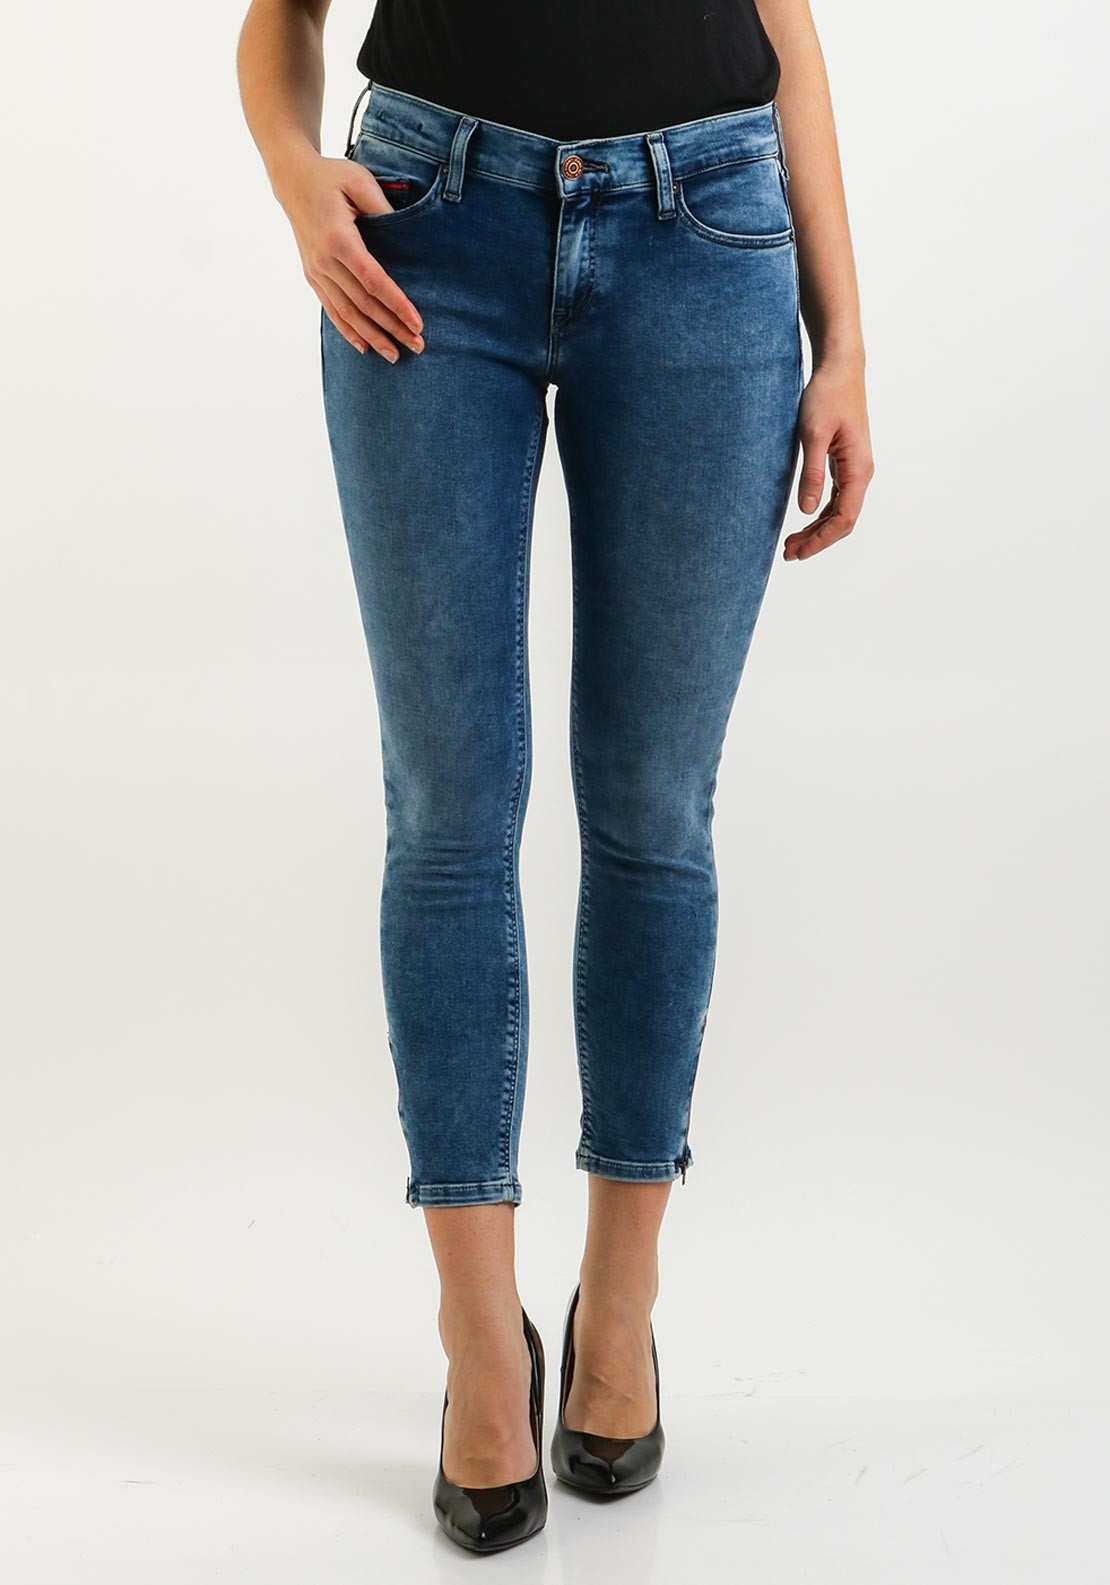 a5881558 Tommy Jeans Womens Nora Skinny 7/8 Jeans, Blue. Be the first to review this  product